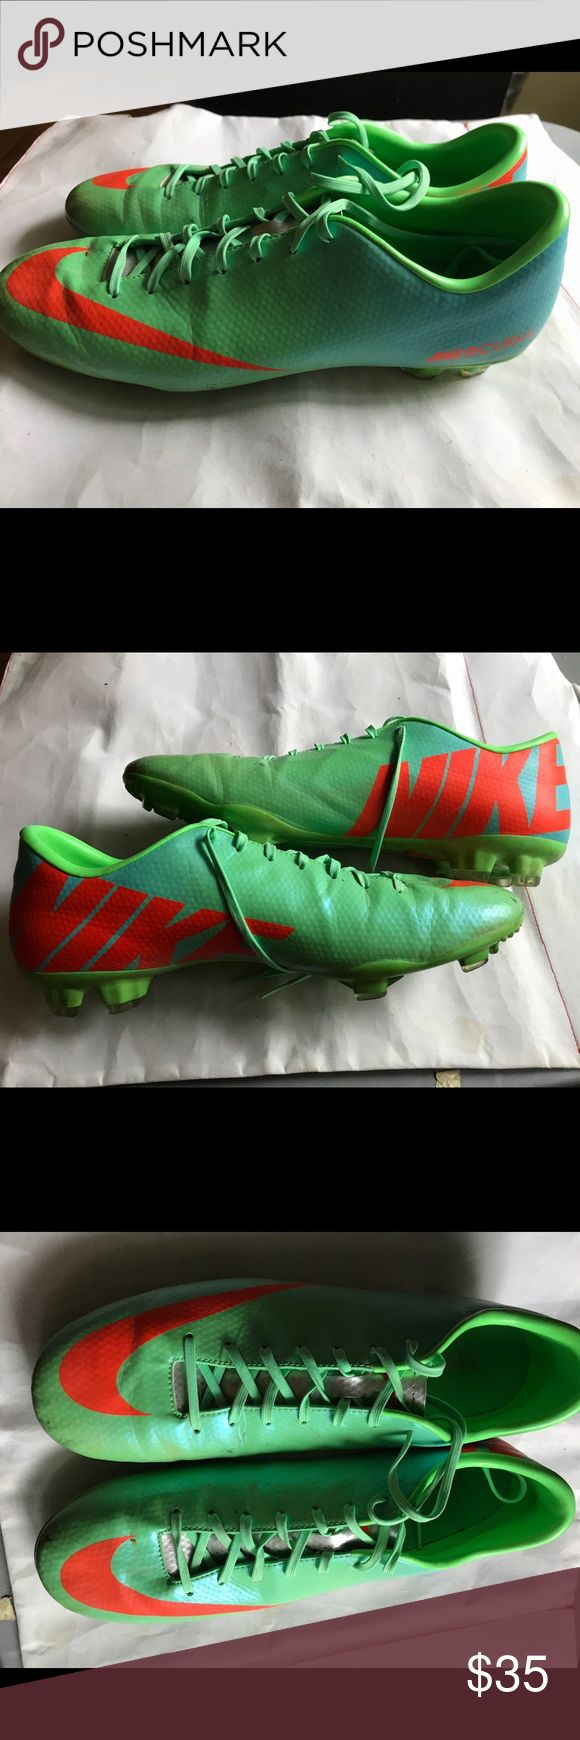 Men's 13 Nike Soccer Cleats Shoes Green with orange. Used but very good condition showing very little use. Size 13, men's. Nike Shoes Athletic Shoes